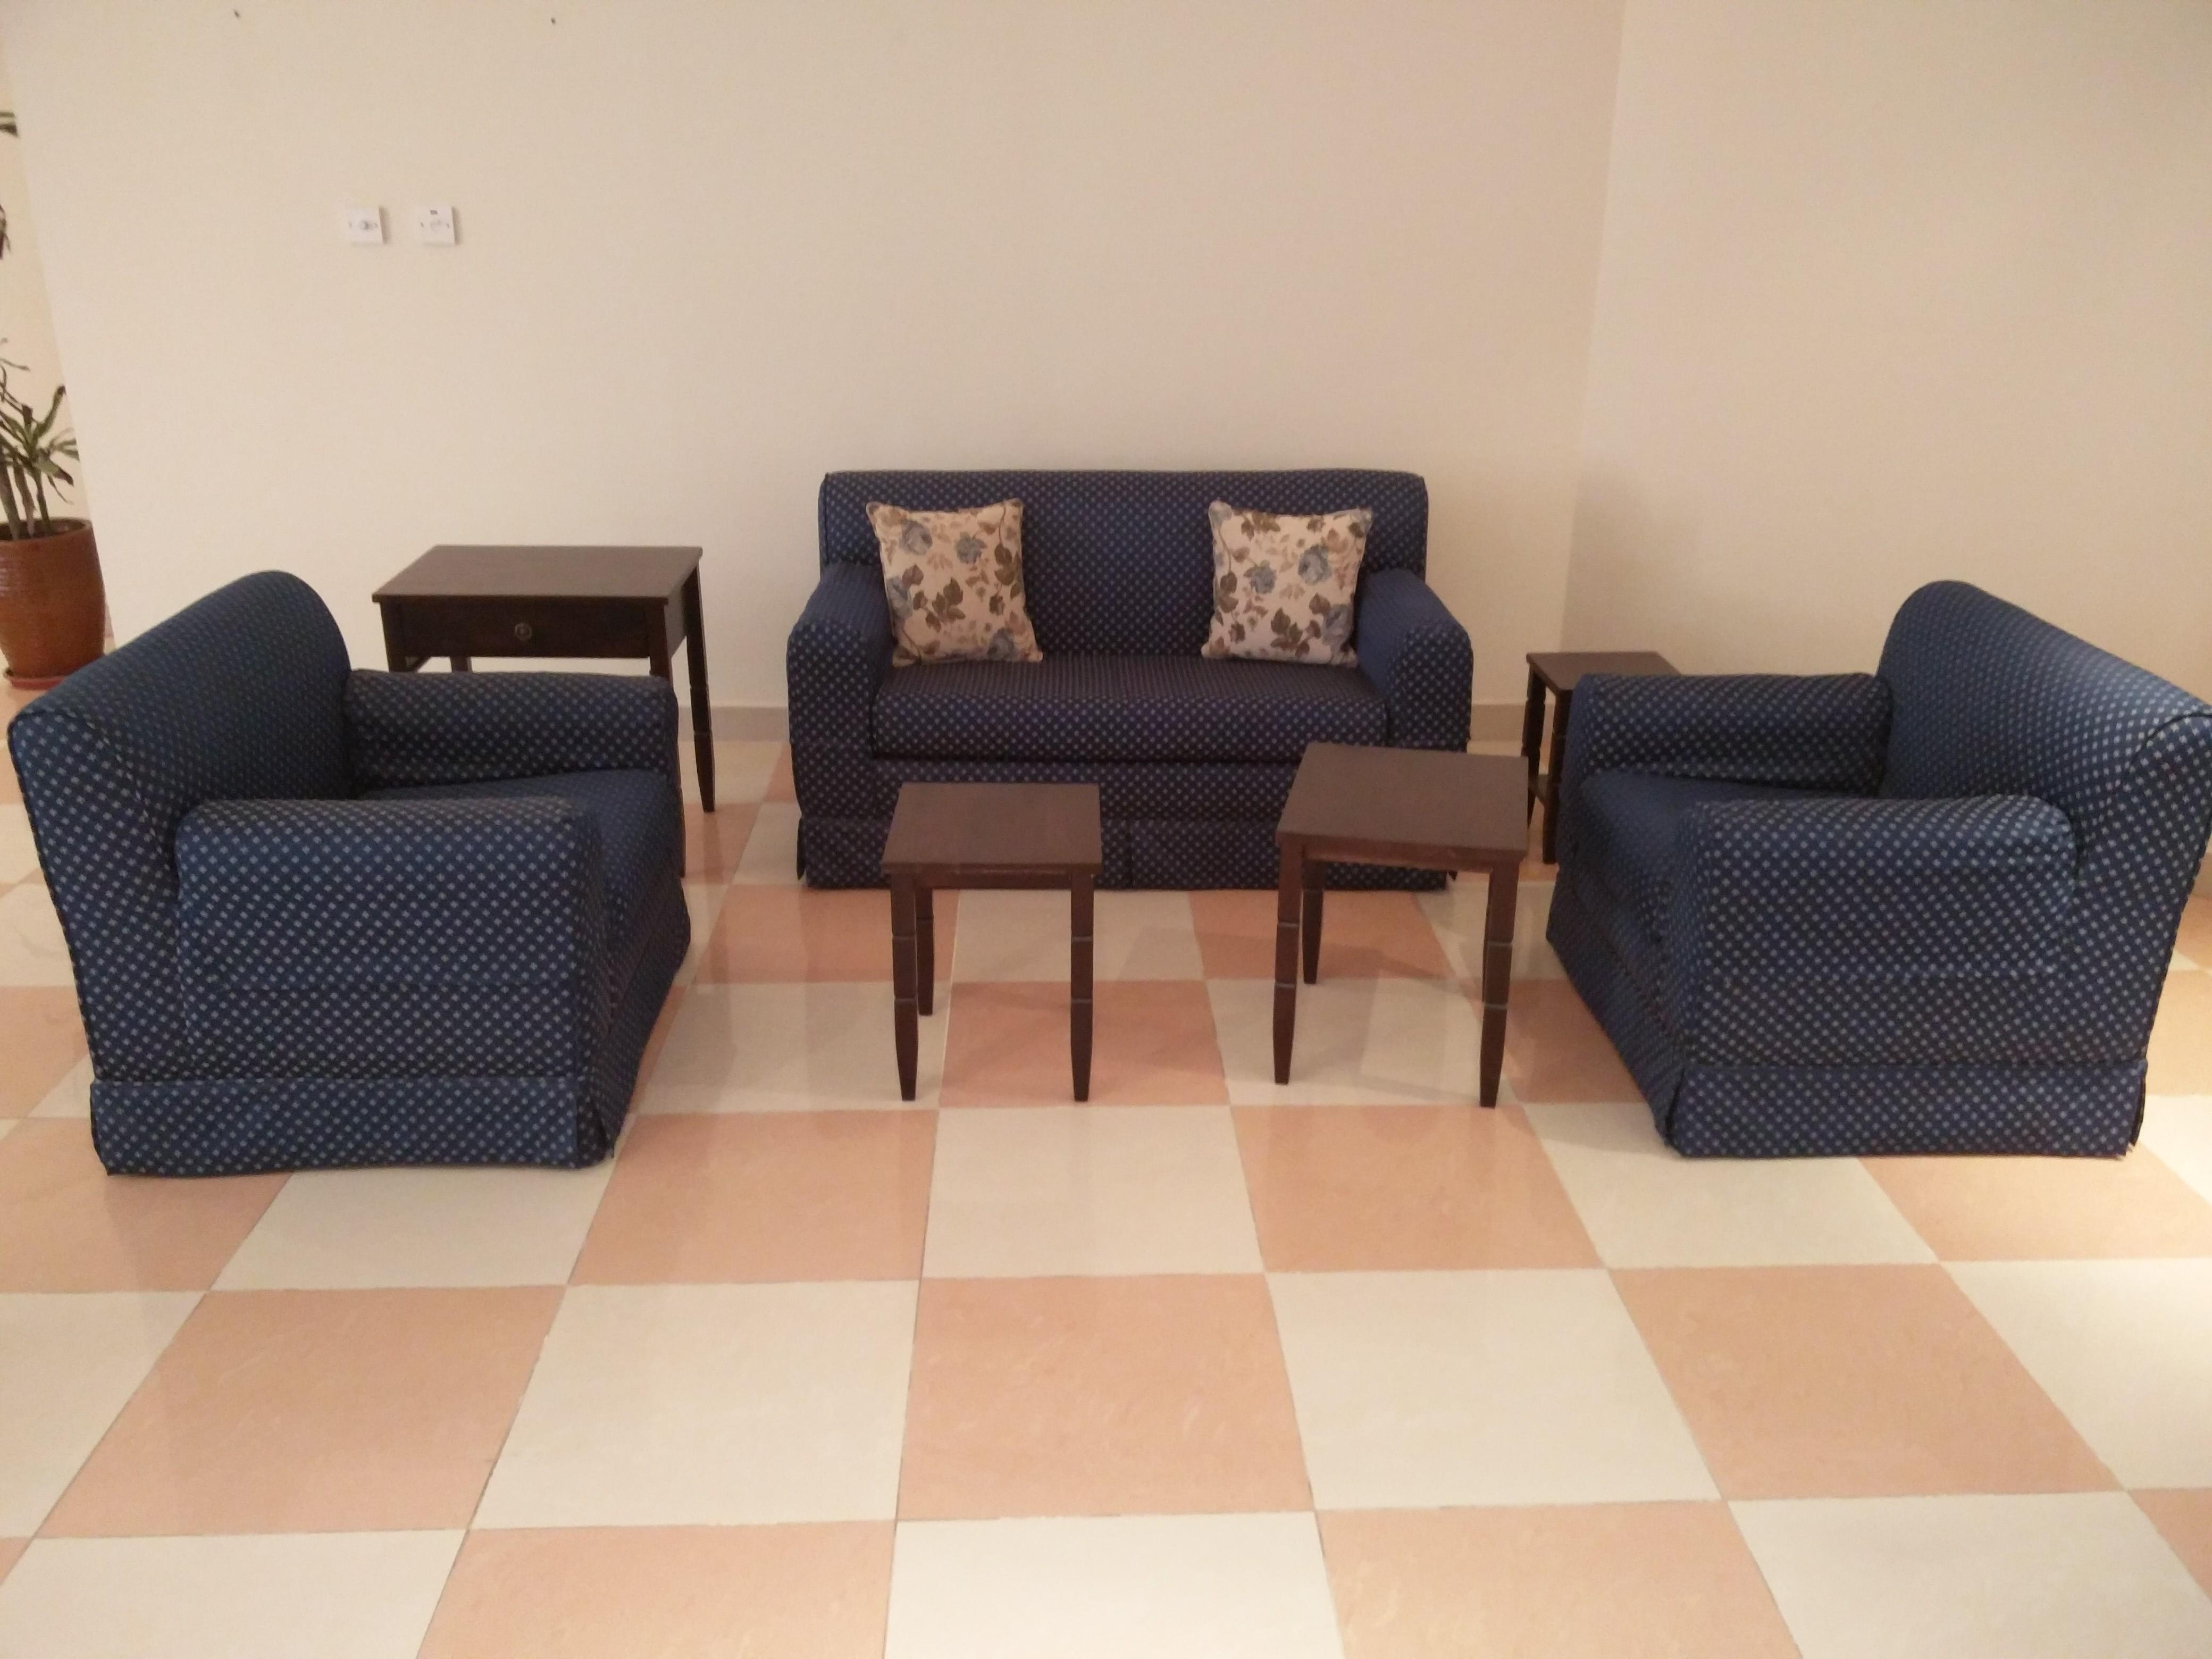 used furniture for sale at negotiable price qatar living. Black Bedroom Furniture Sets. Home Design Ideas